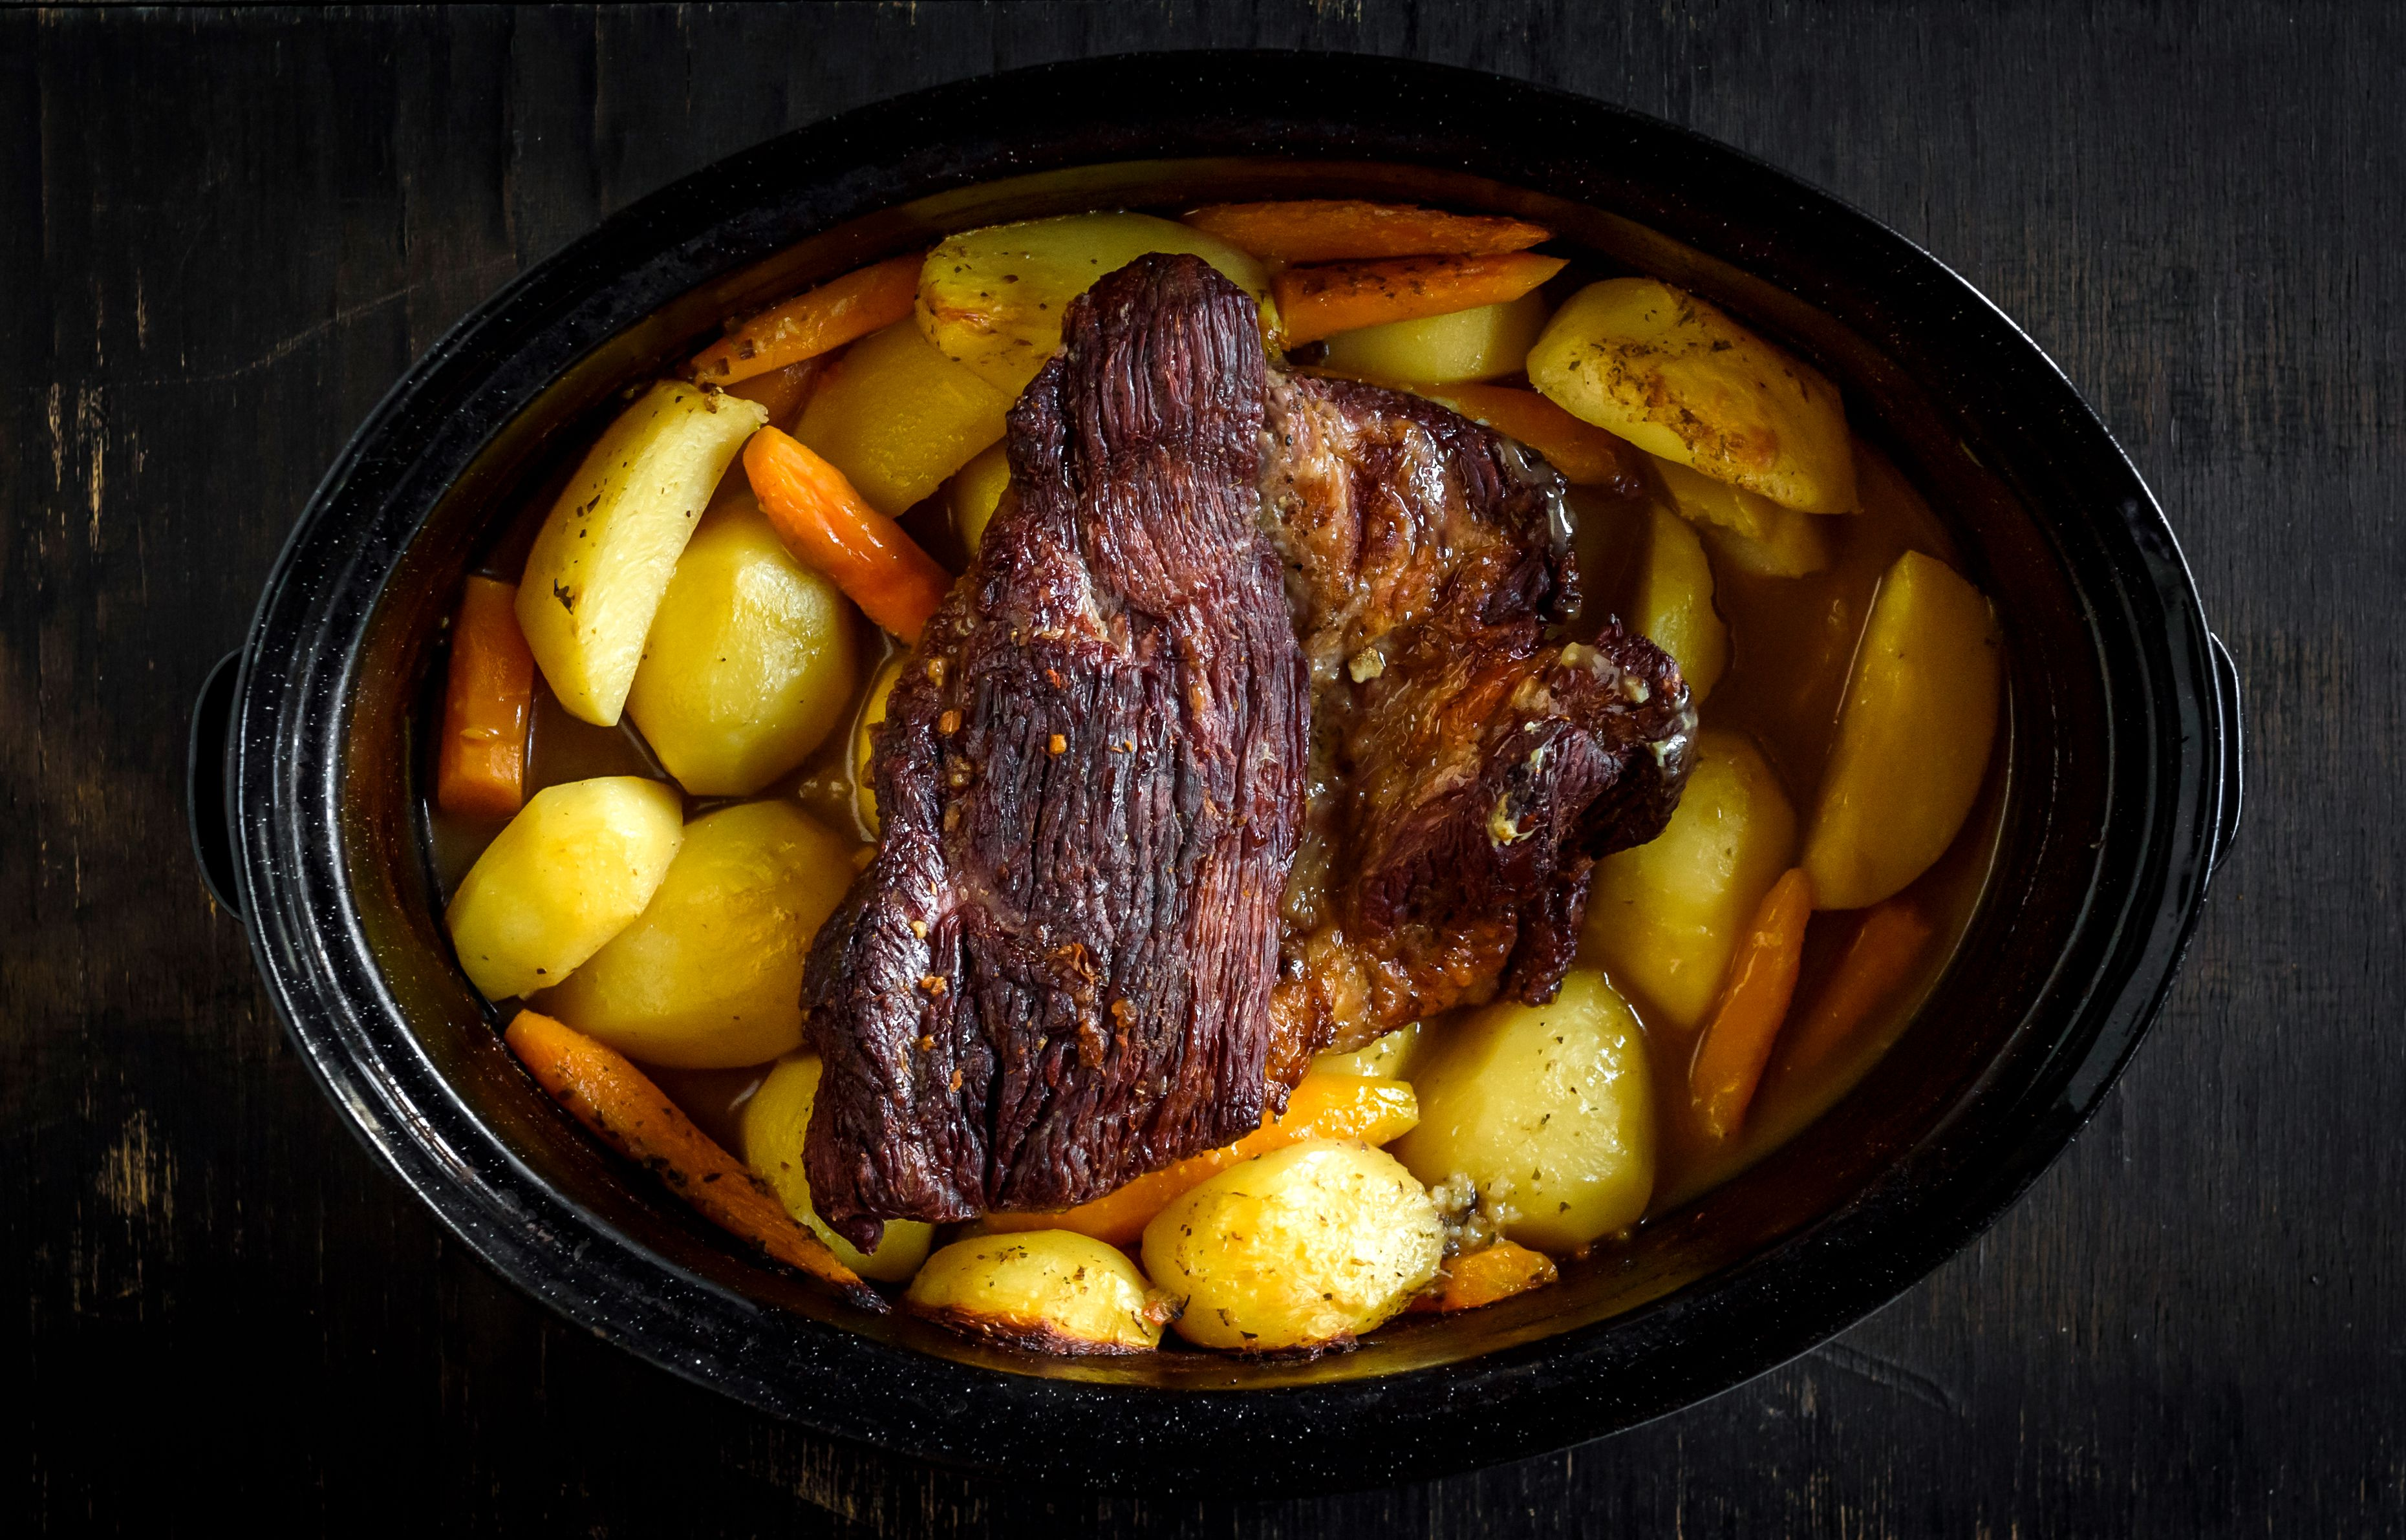 Pot roast and vegetables in a crock pot